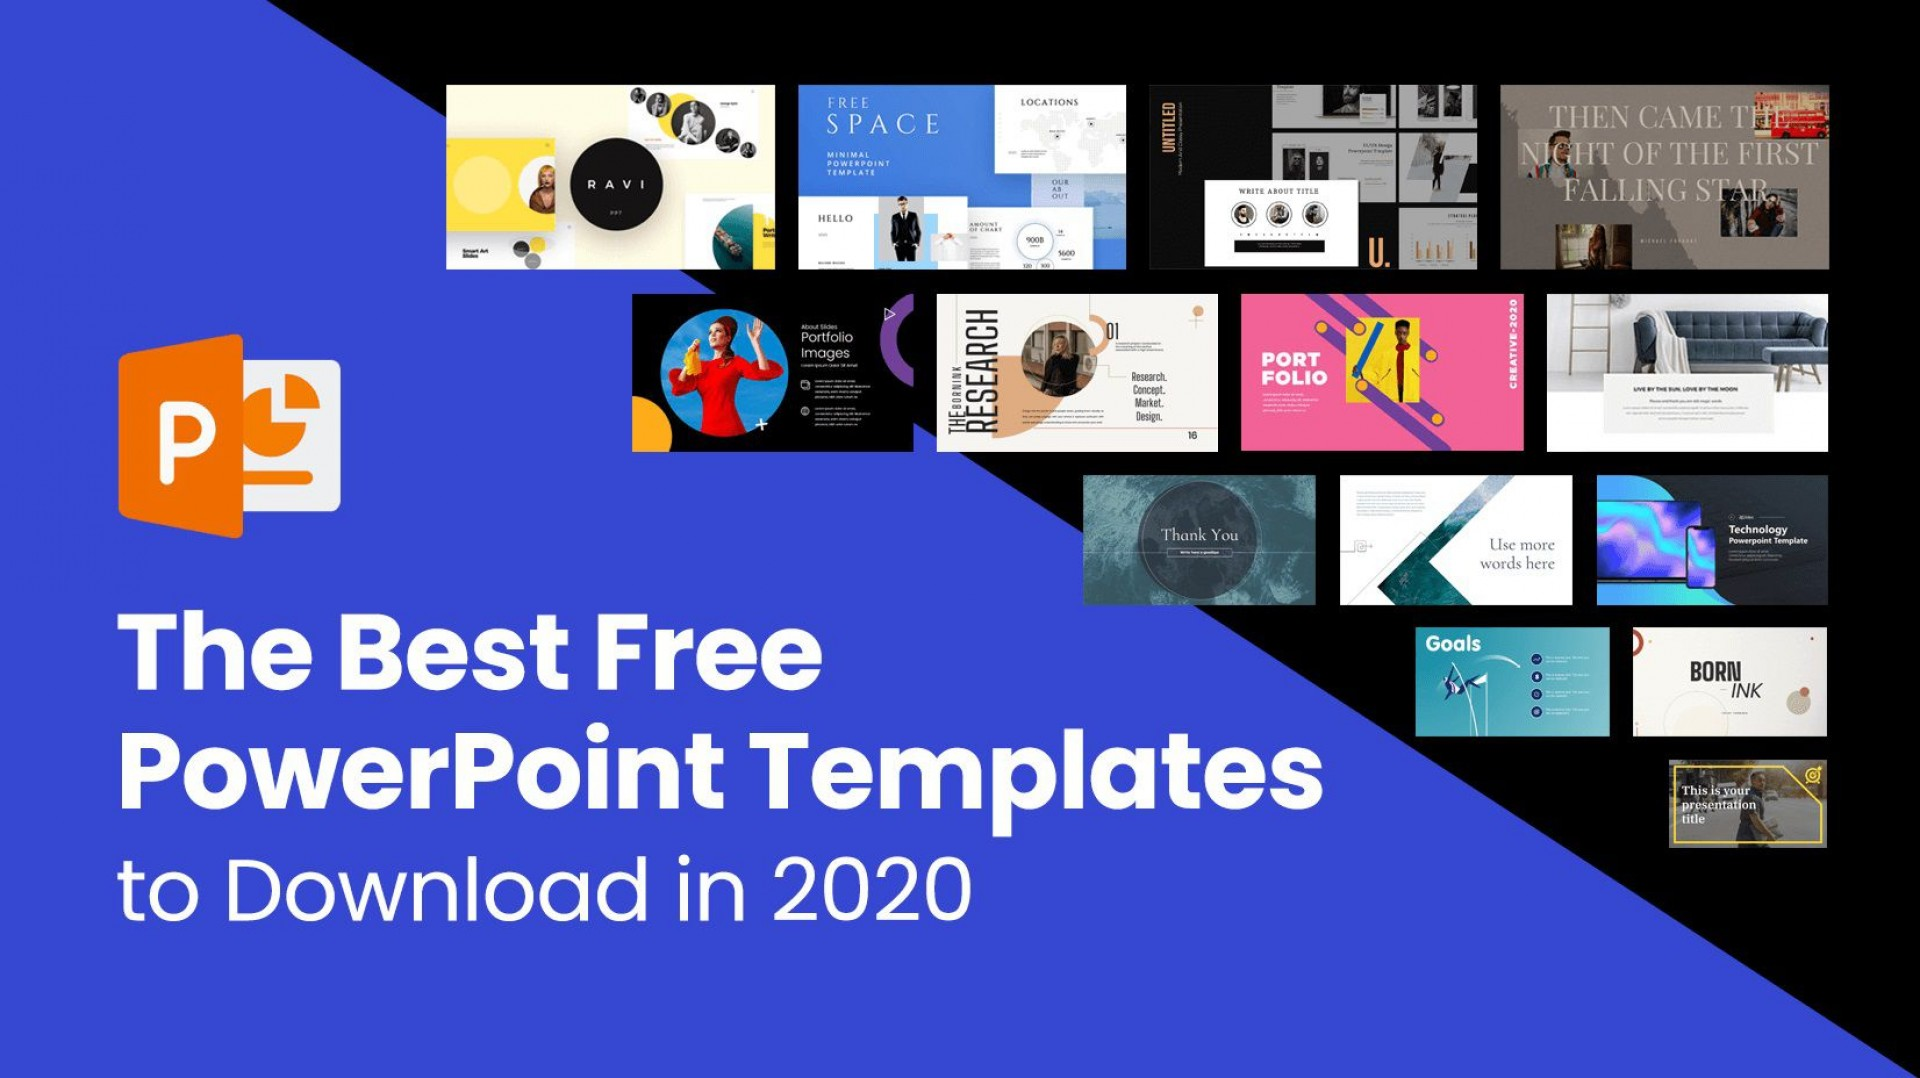 009 Marvelou Best Powerpoint Template Free Inspiration  Busines Download White Background 20191920